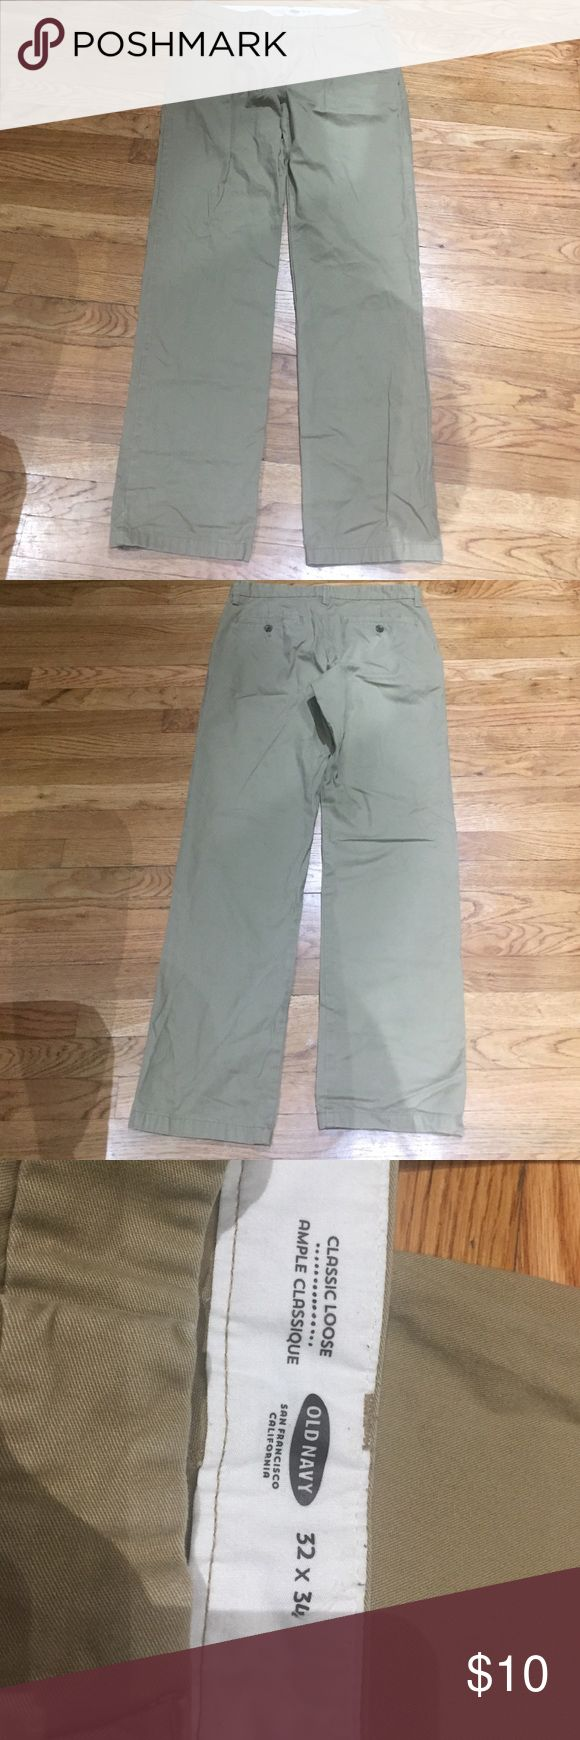 Old Navy khaki pants 👖 for men 32x34 Old navy khaki pants 👖 for men 32x34 style: classic loose. This pants are in outstanding conditions. PLEASE ASK ALL QUESTIONS PRIOR TO PURCHASE. I AM NOT RESPONSIBLE FOR LOST OR DAMAGE PARCEL OR BUYERS DISSATISFACTION. Old Navy Pants Chinos & Khakis